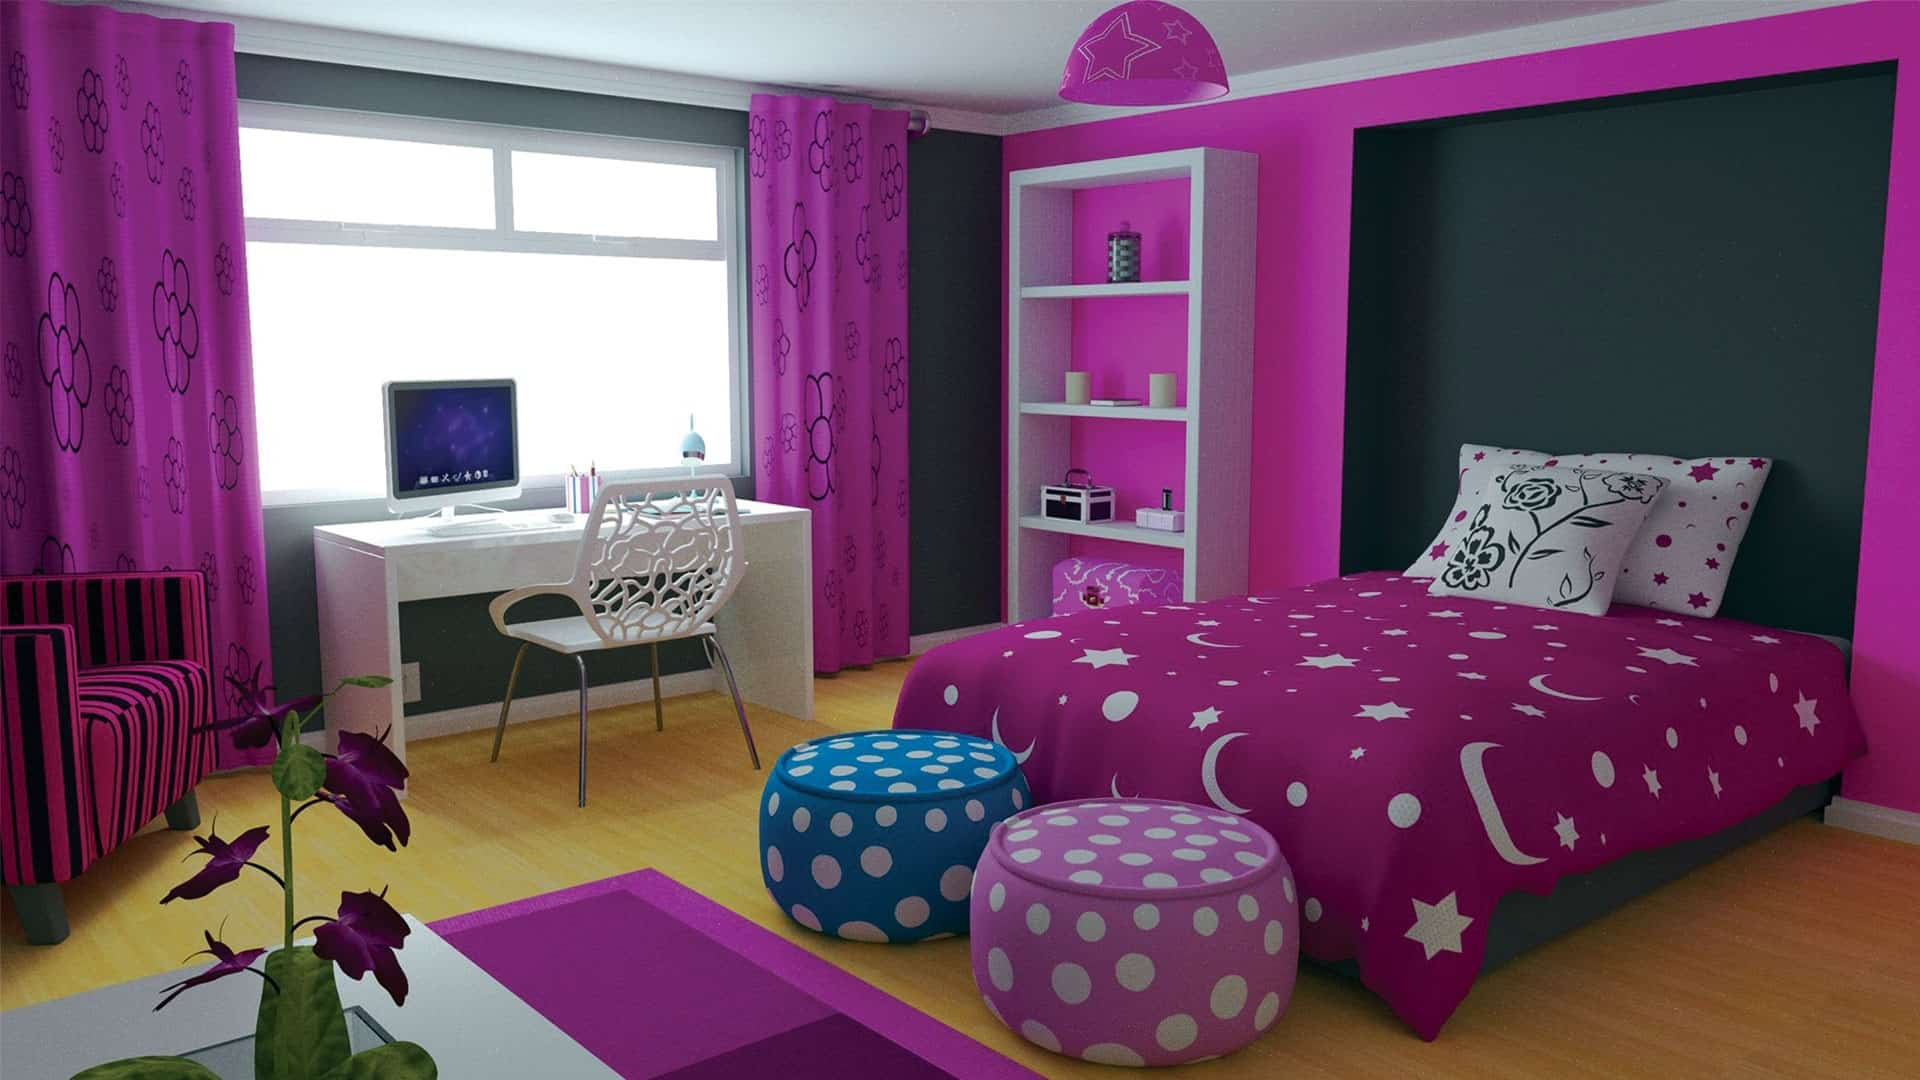 Home decor trends 2017 purple teen room for Bedroom designs purple